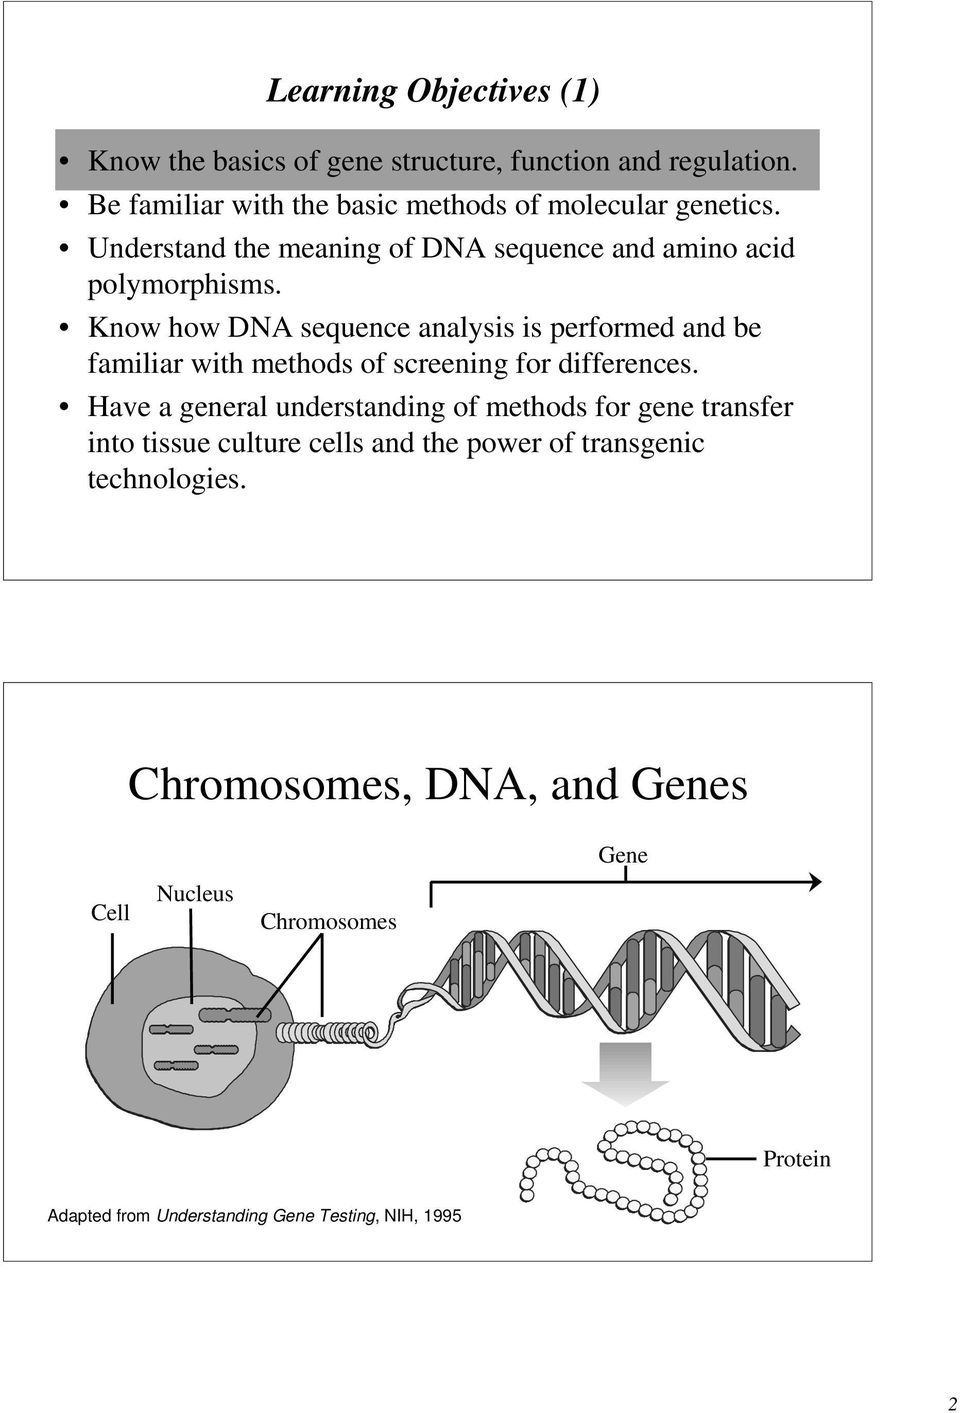 Know how DNA sequence analysis is performed and be familiar with methods of screening for differences.